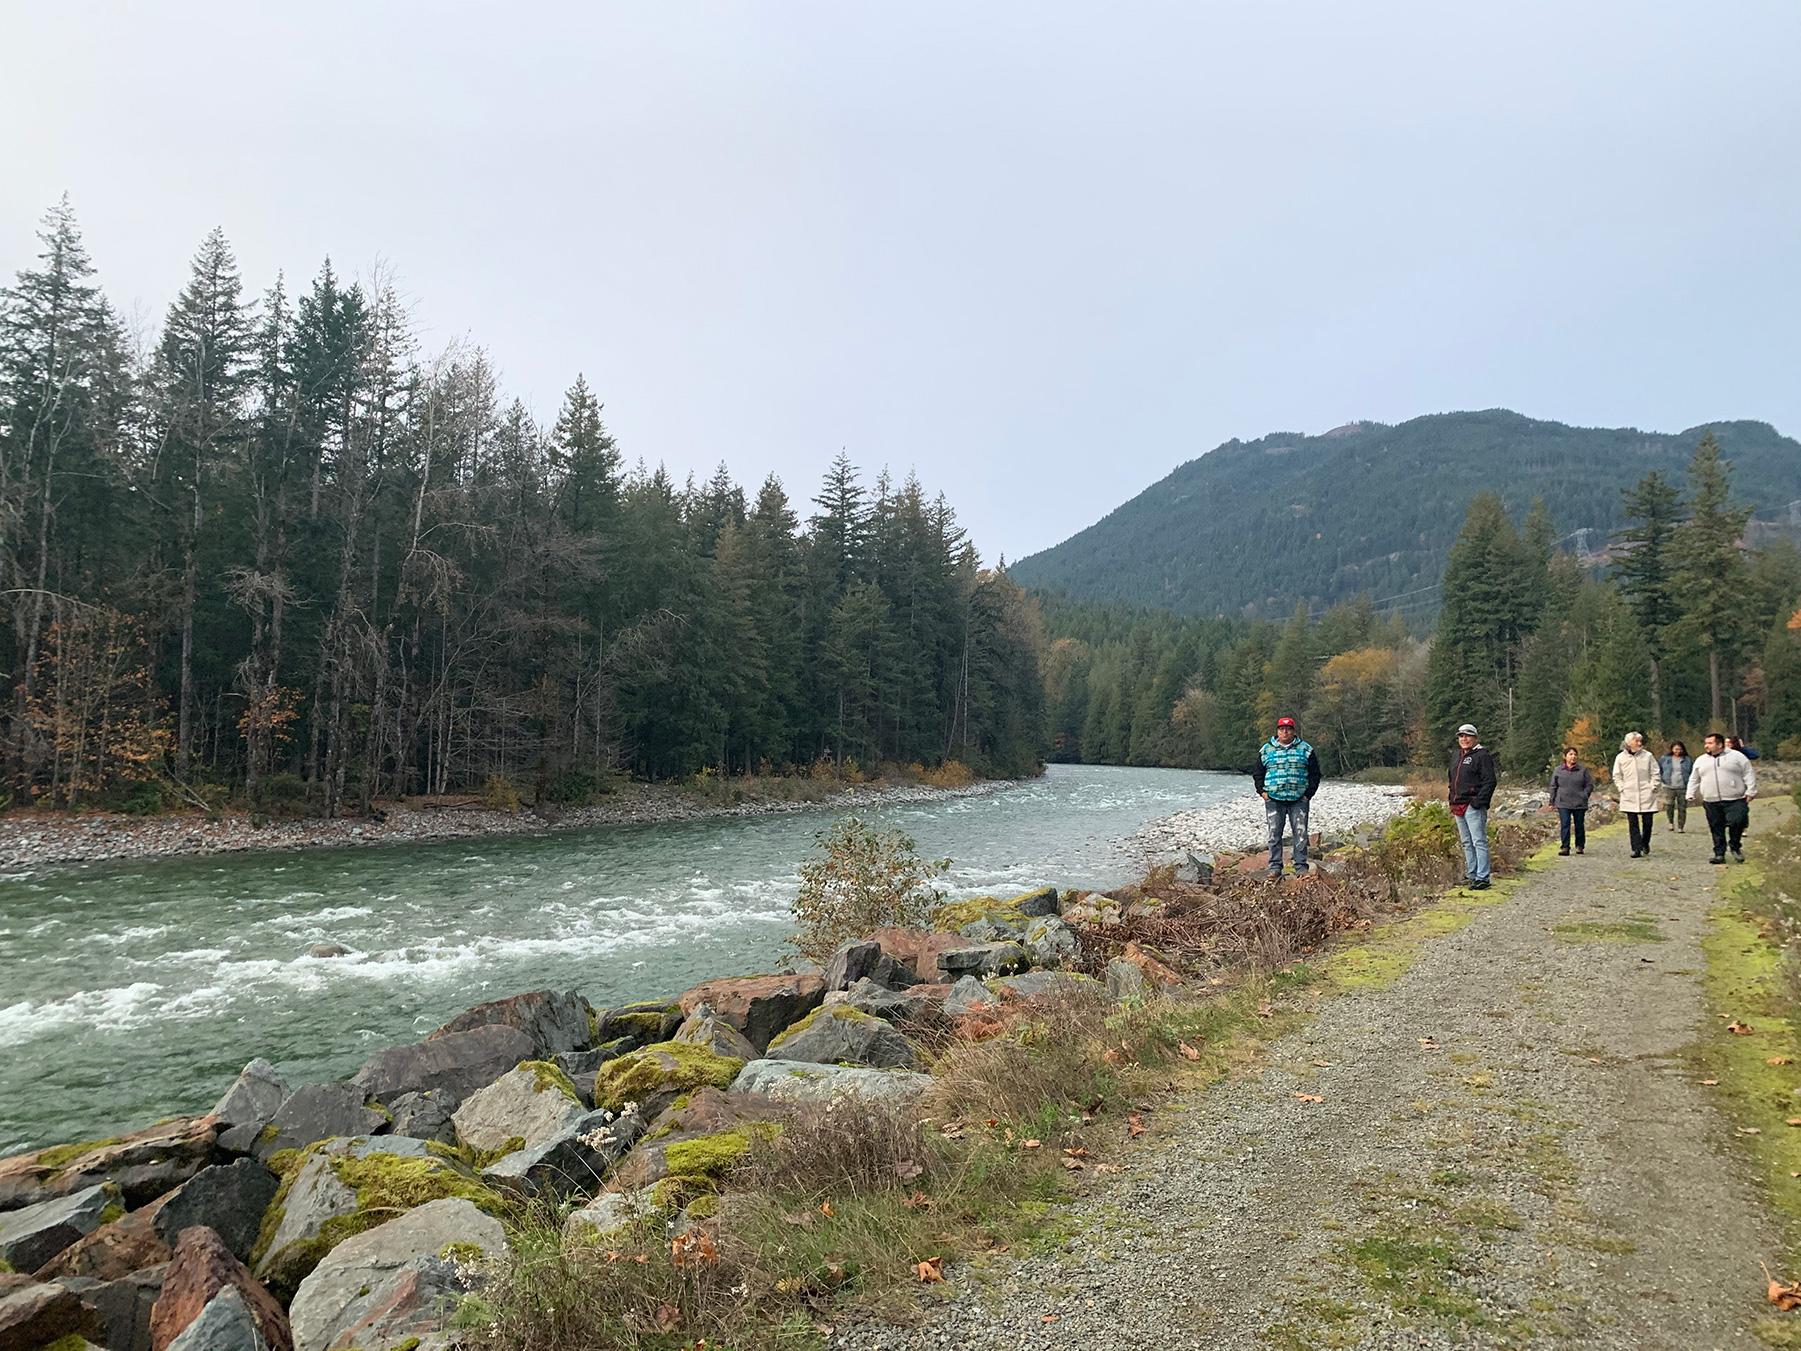 RELAW team members walk by the river during a retreat (Photo: Shelby Lindley)